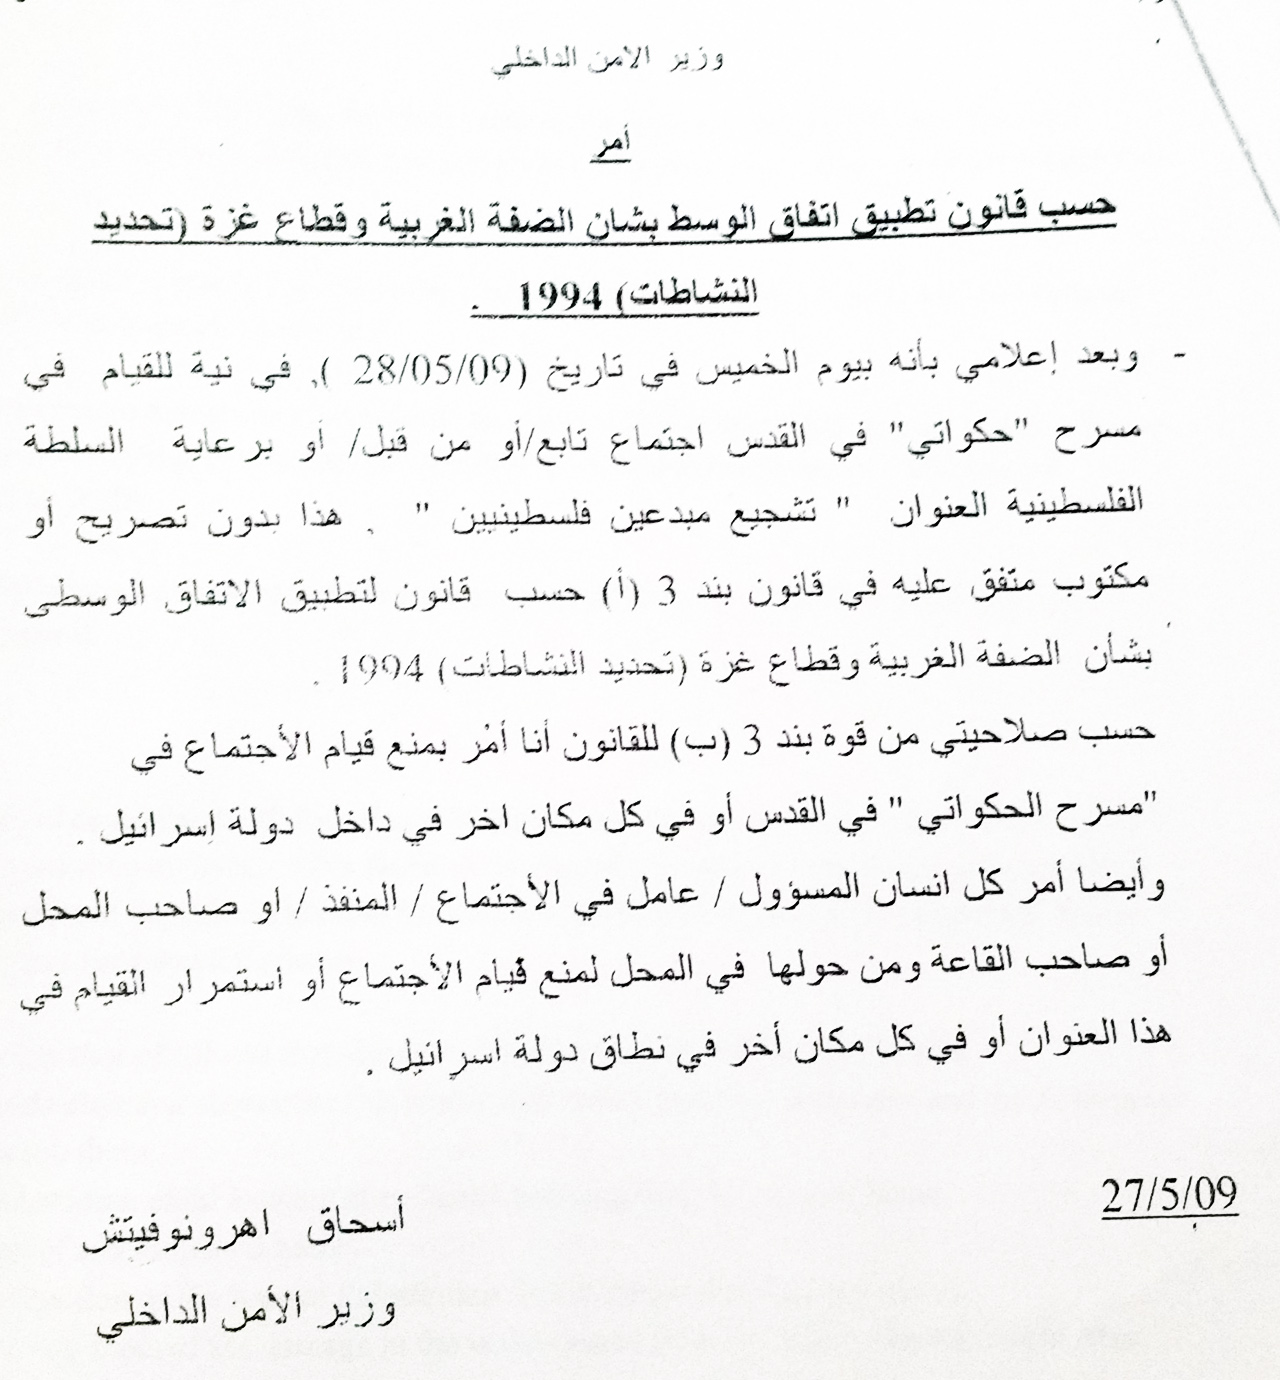 "A copy of an old order signed by Yitzhak Aharonovich, former Israeli Minister of Internal Security, that bans a meeting titled ""Encouraging Palestinian Artists"" in Al-Hakawati theater on May 27, 2009. (Photo: Courtesy of Al-Hakawati theater)"